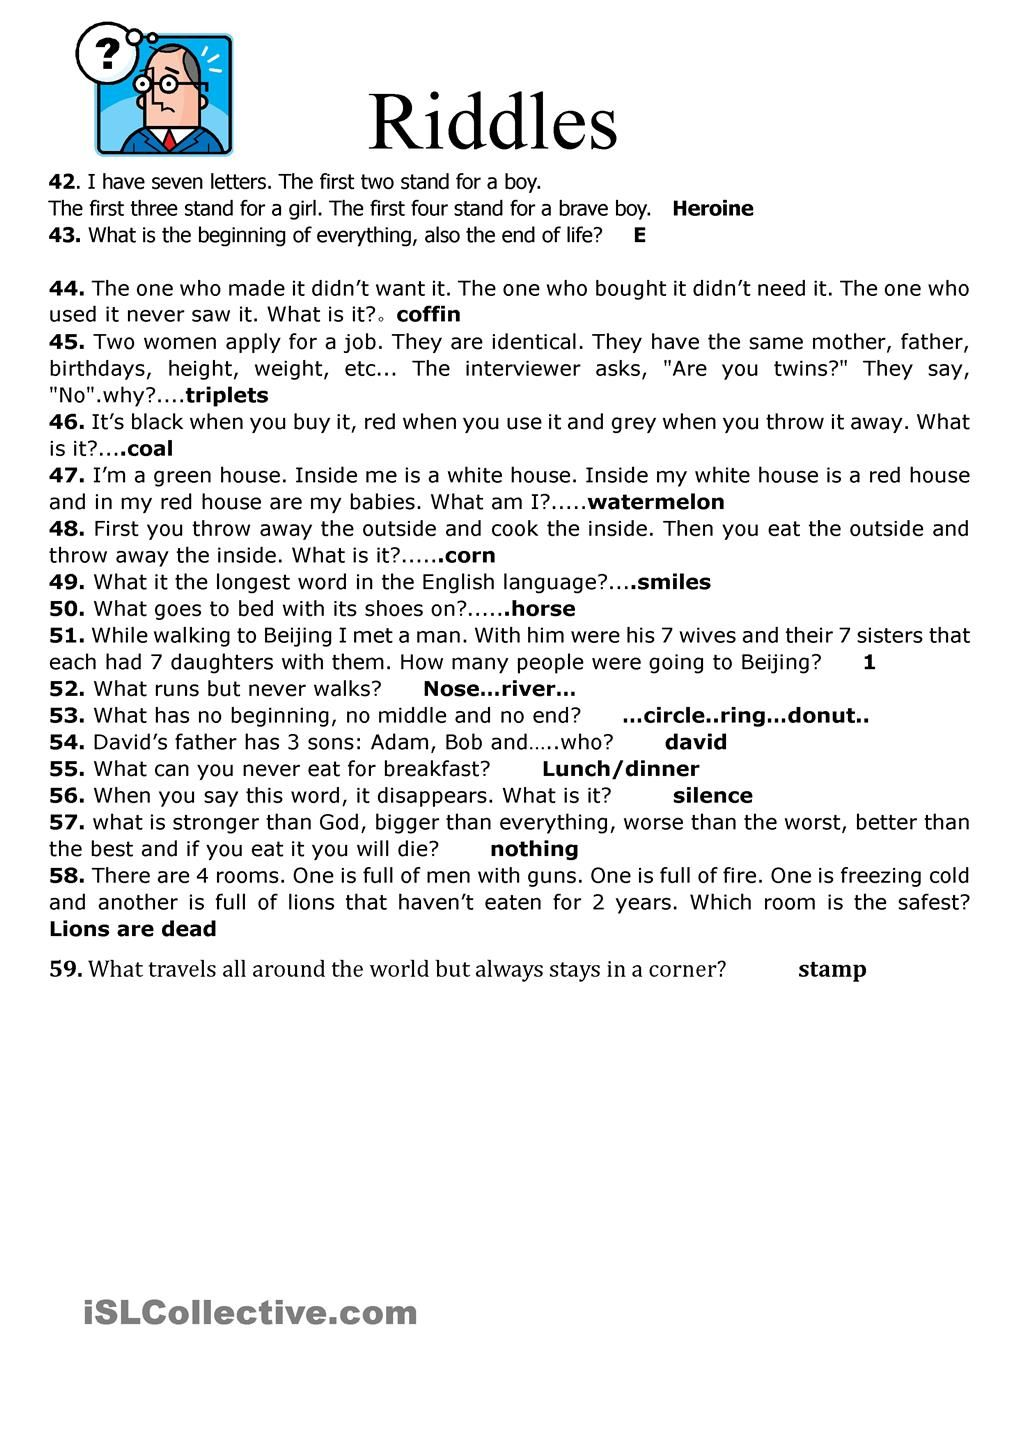 59 Riddles Jokes And Riddles Funny Riddles Riddles